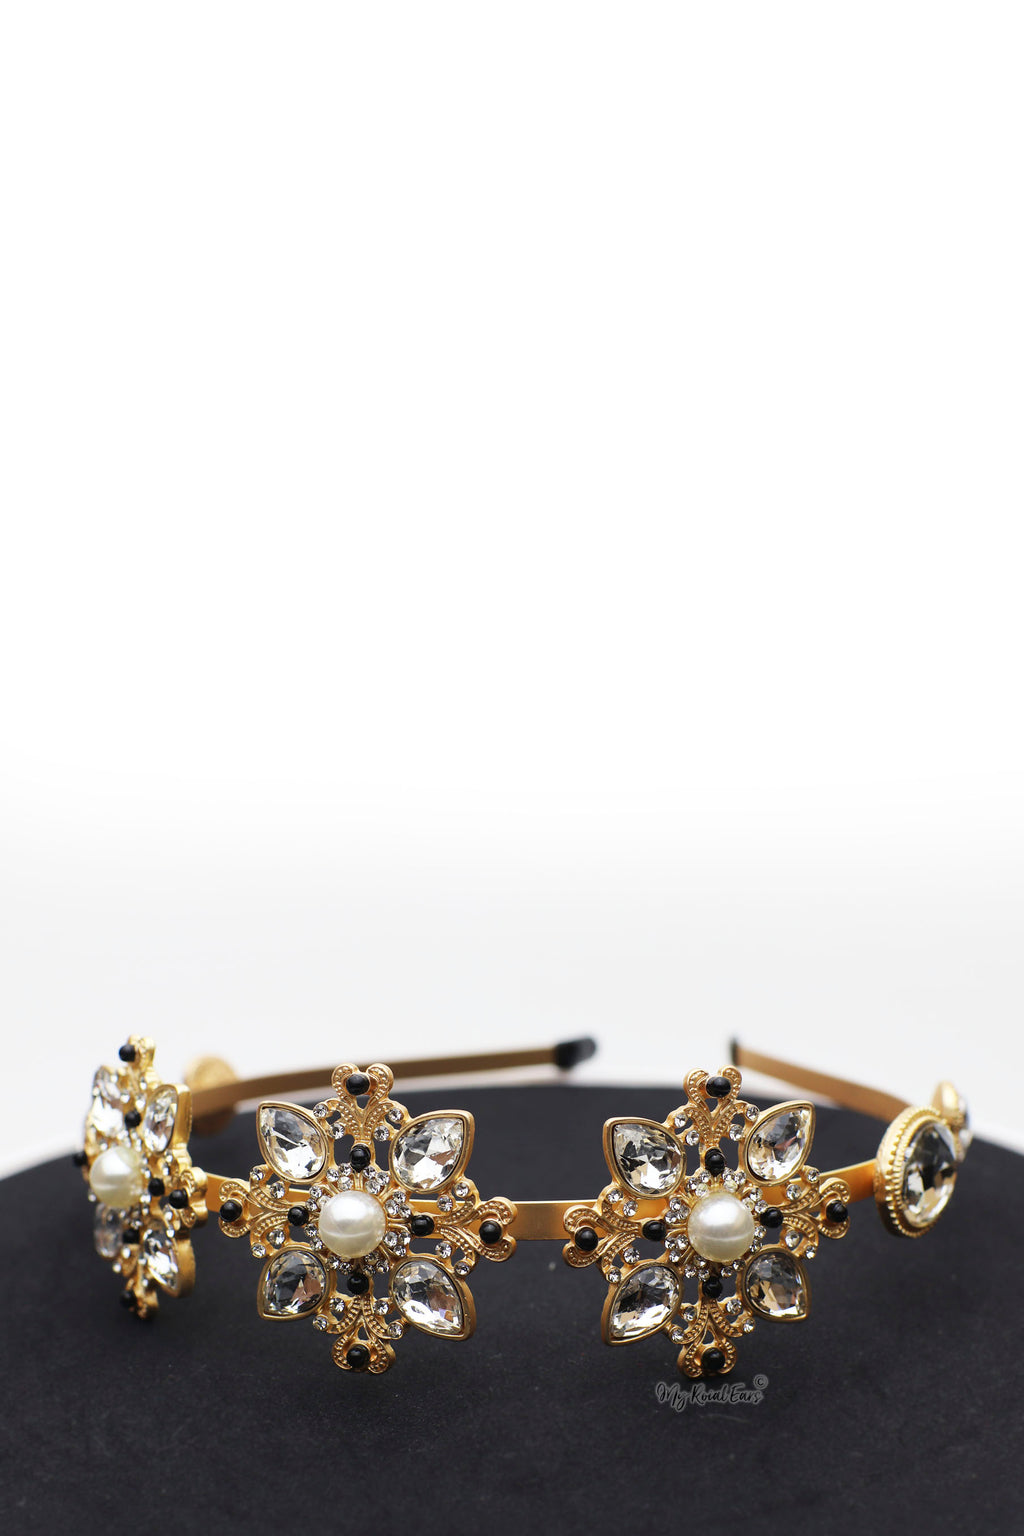 Queen Juno- gold crystal flower headband - My Roial Ears LTD